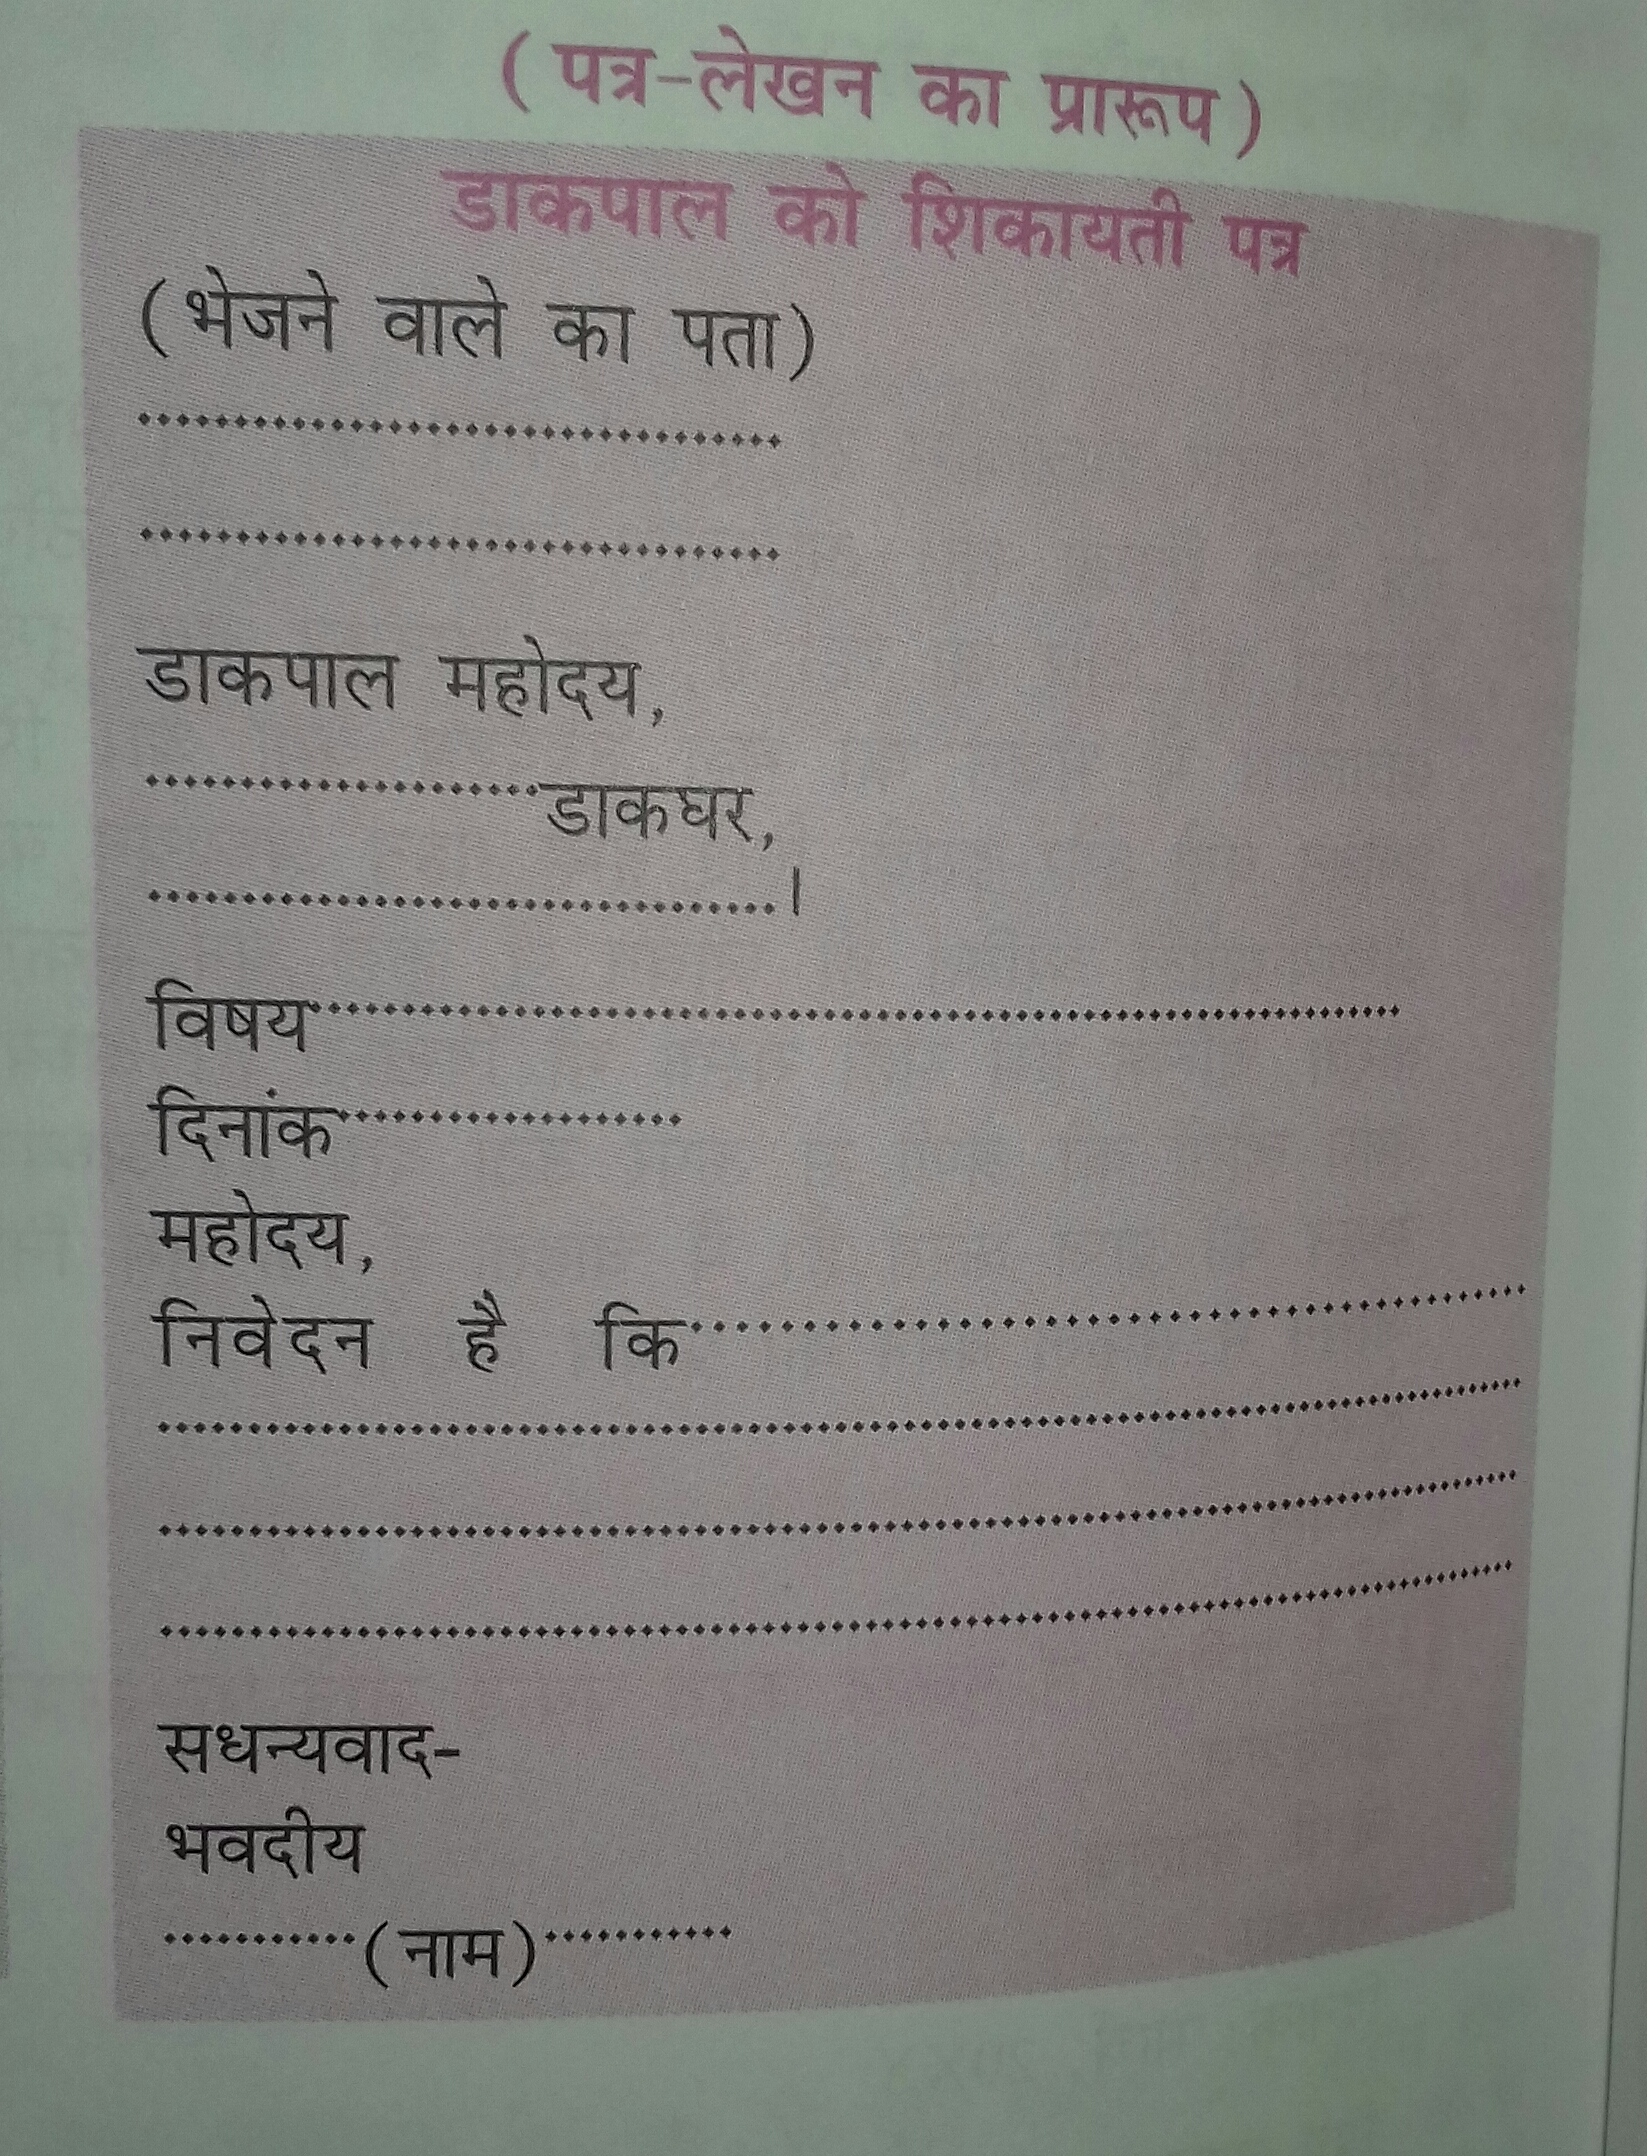 what is the new format for aupcharik Patra for class 10th